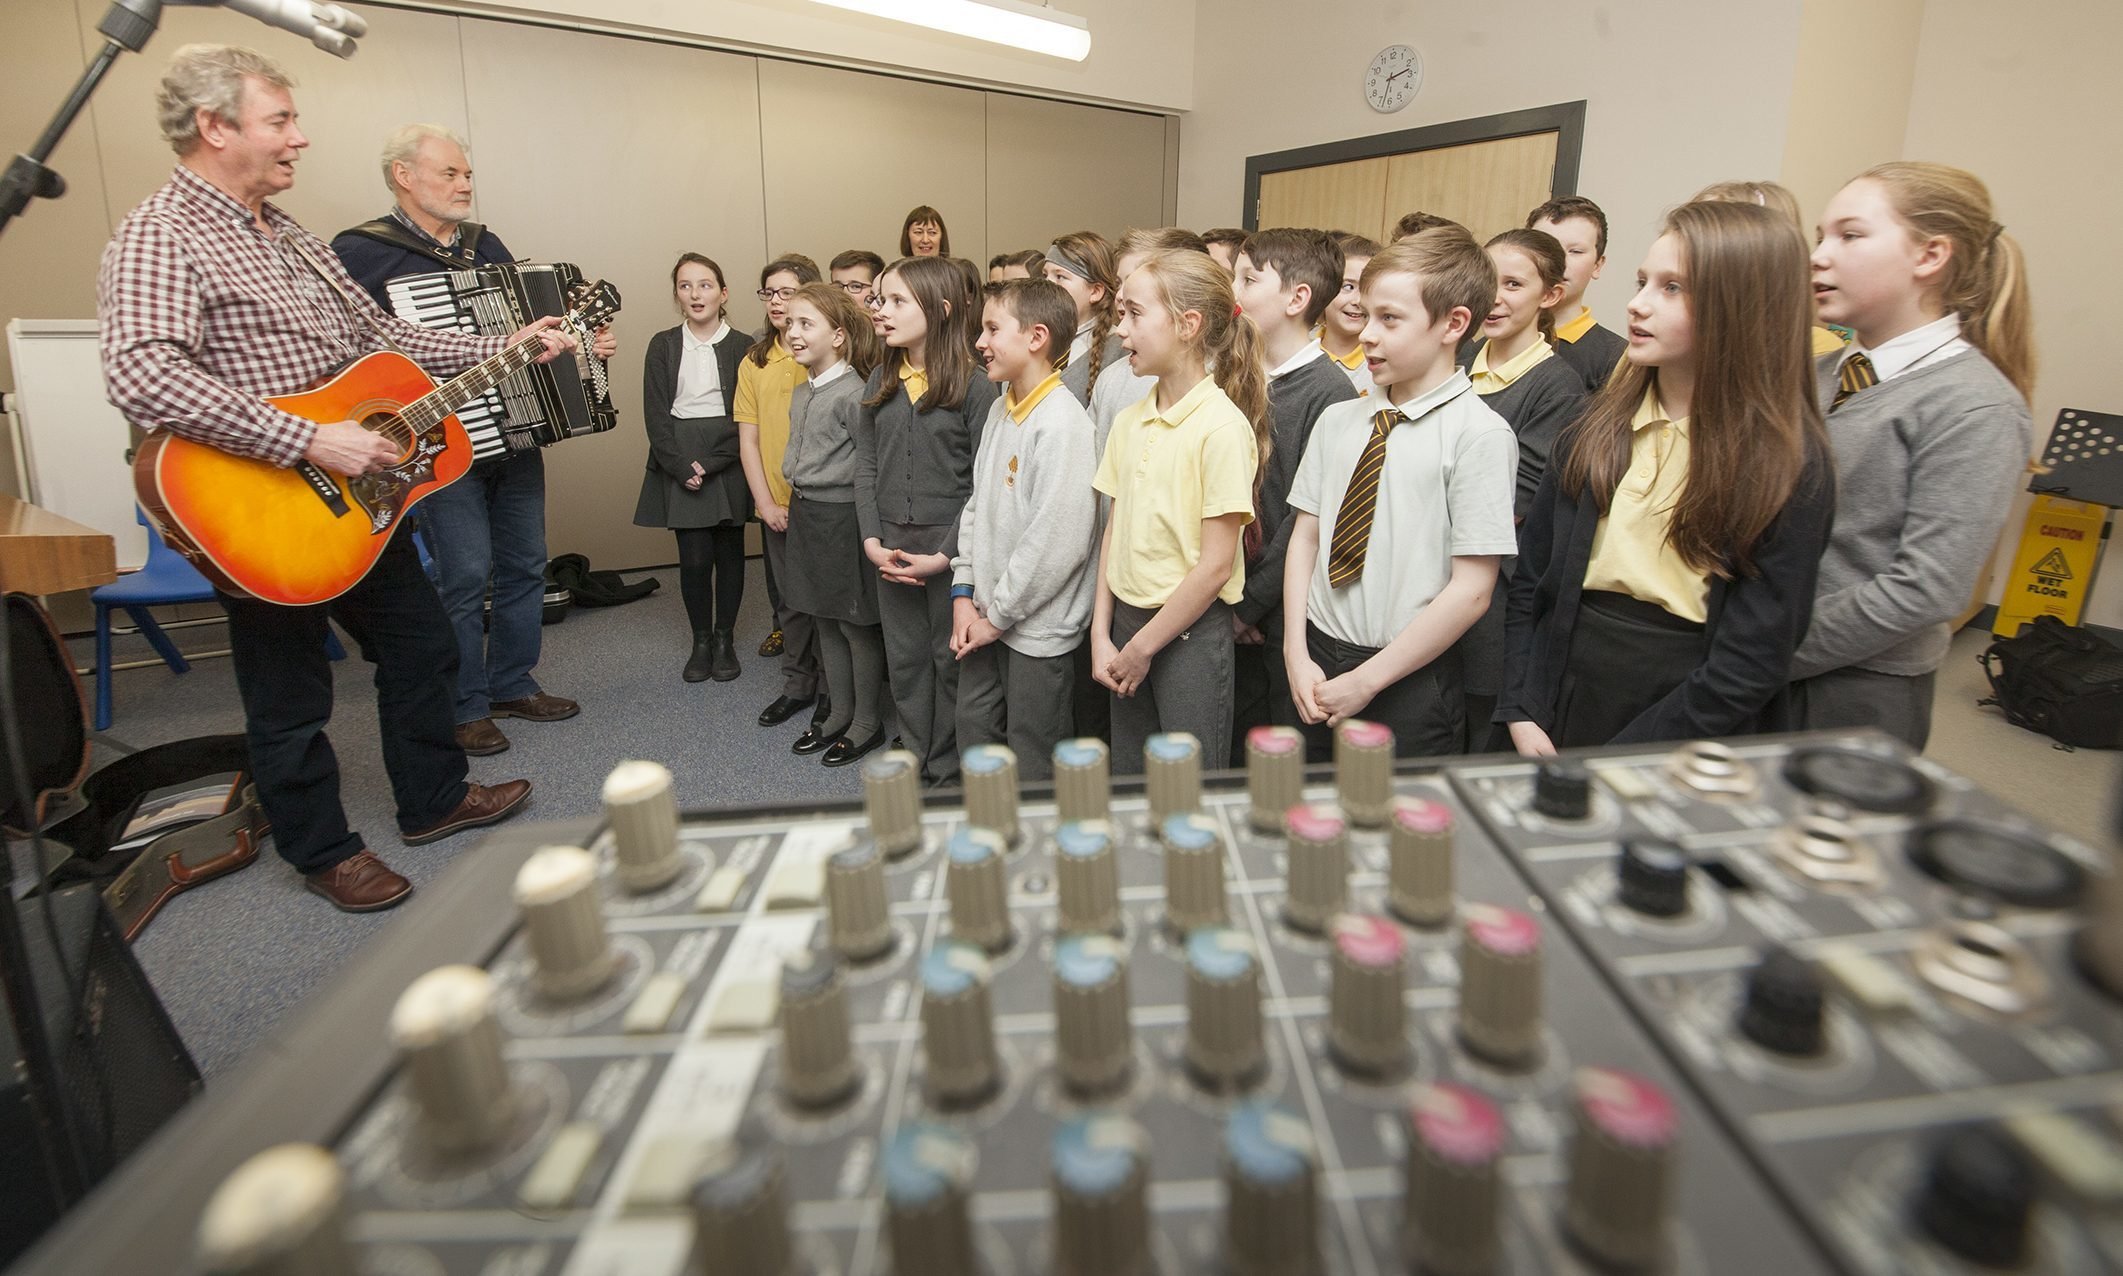 Ian Lamb and Tony Simpson leading the recording with pupils.